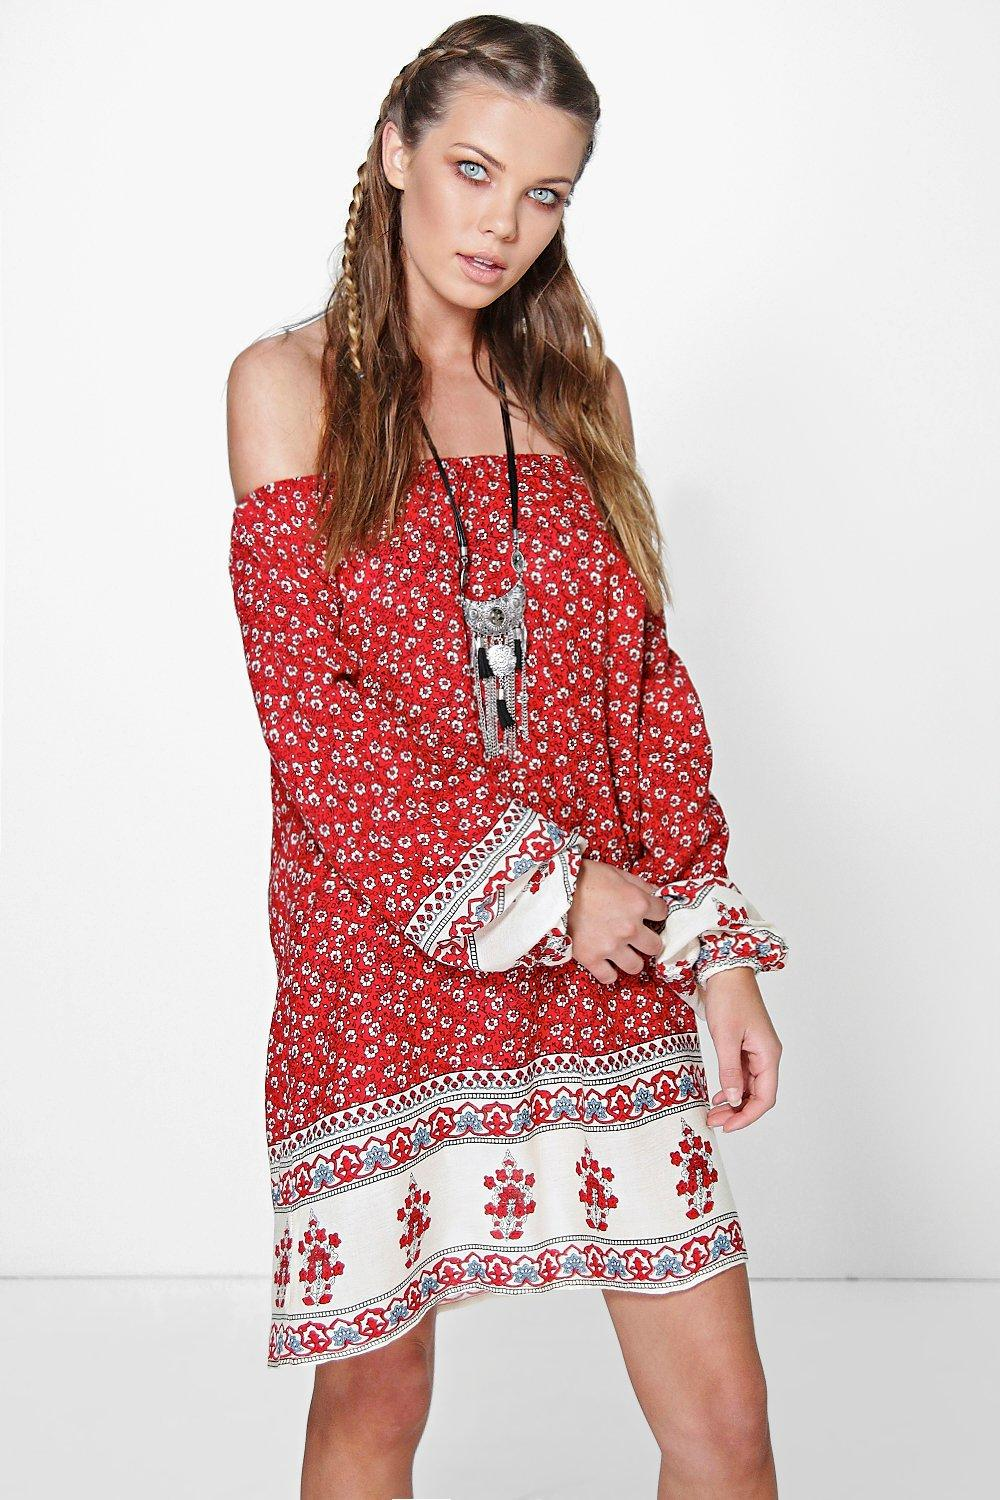 Paisley Off The Shoulder Dress - red